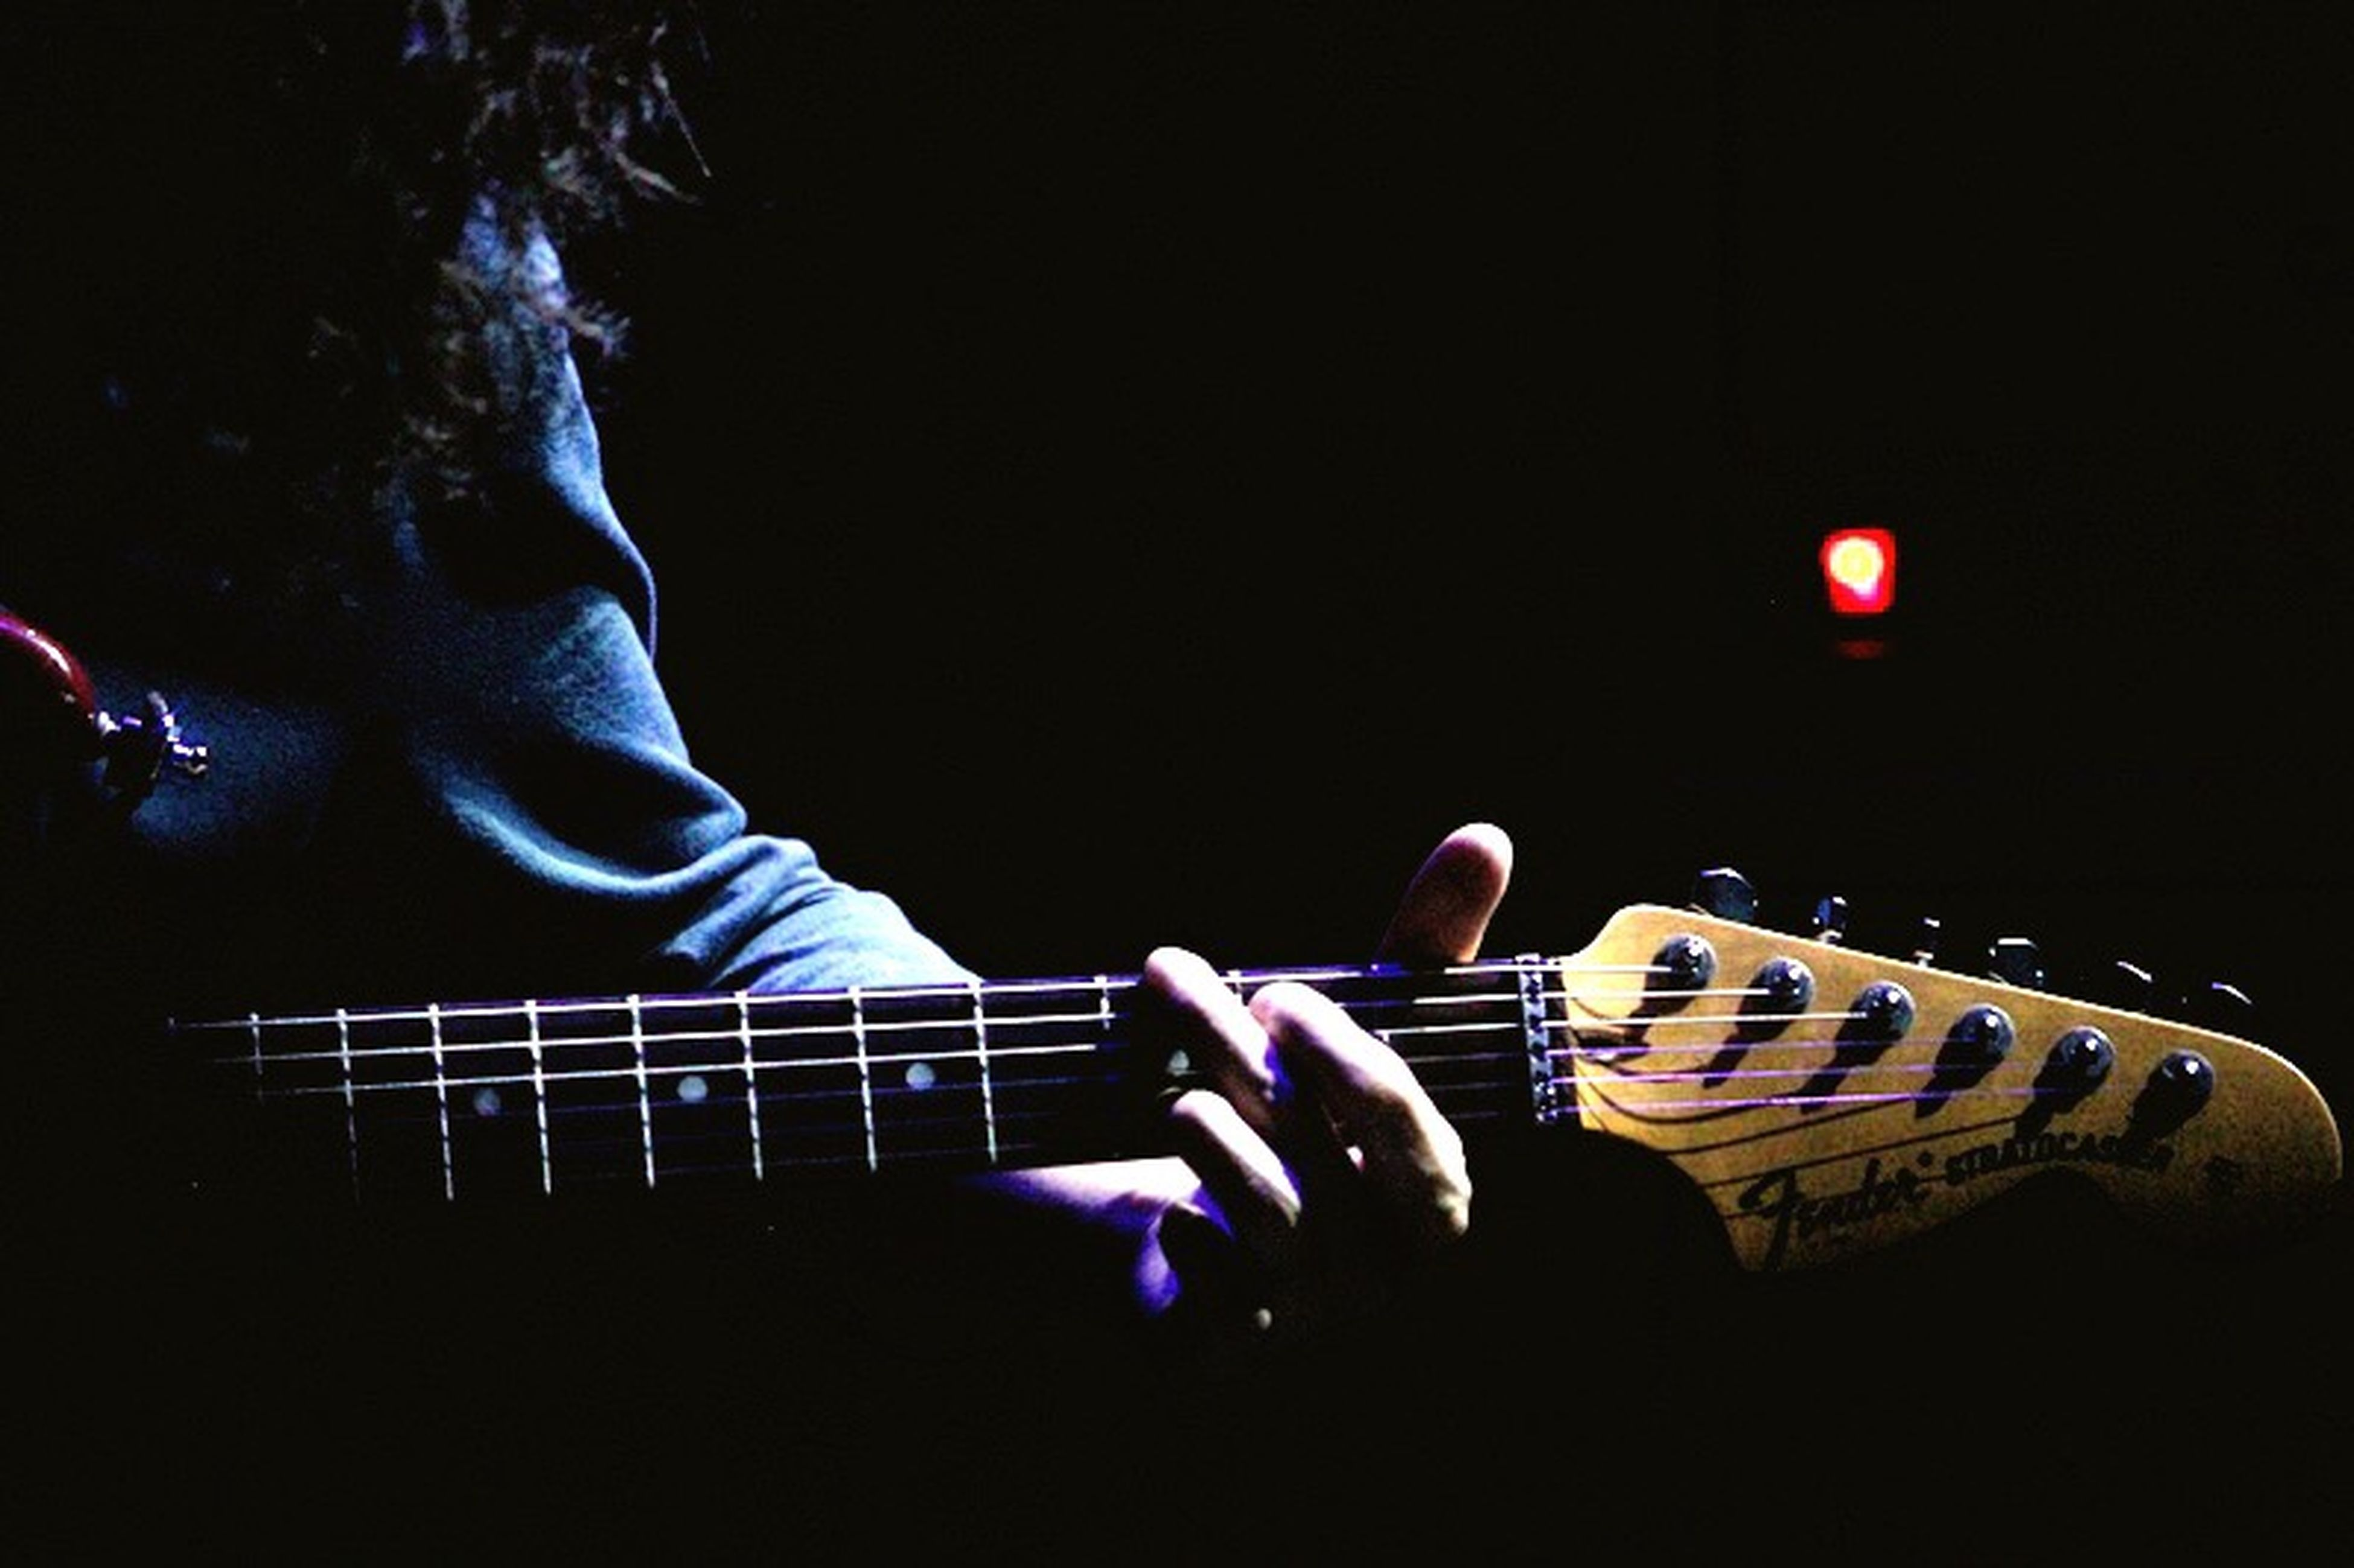 night, arts culture and entertainment, men, lifestyles, music, leisure activity, copy space, illuminated, musical instrument, skill, performance, person, occupation, side view, rear view, clear sky, guitar, casual clothing